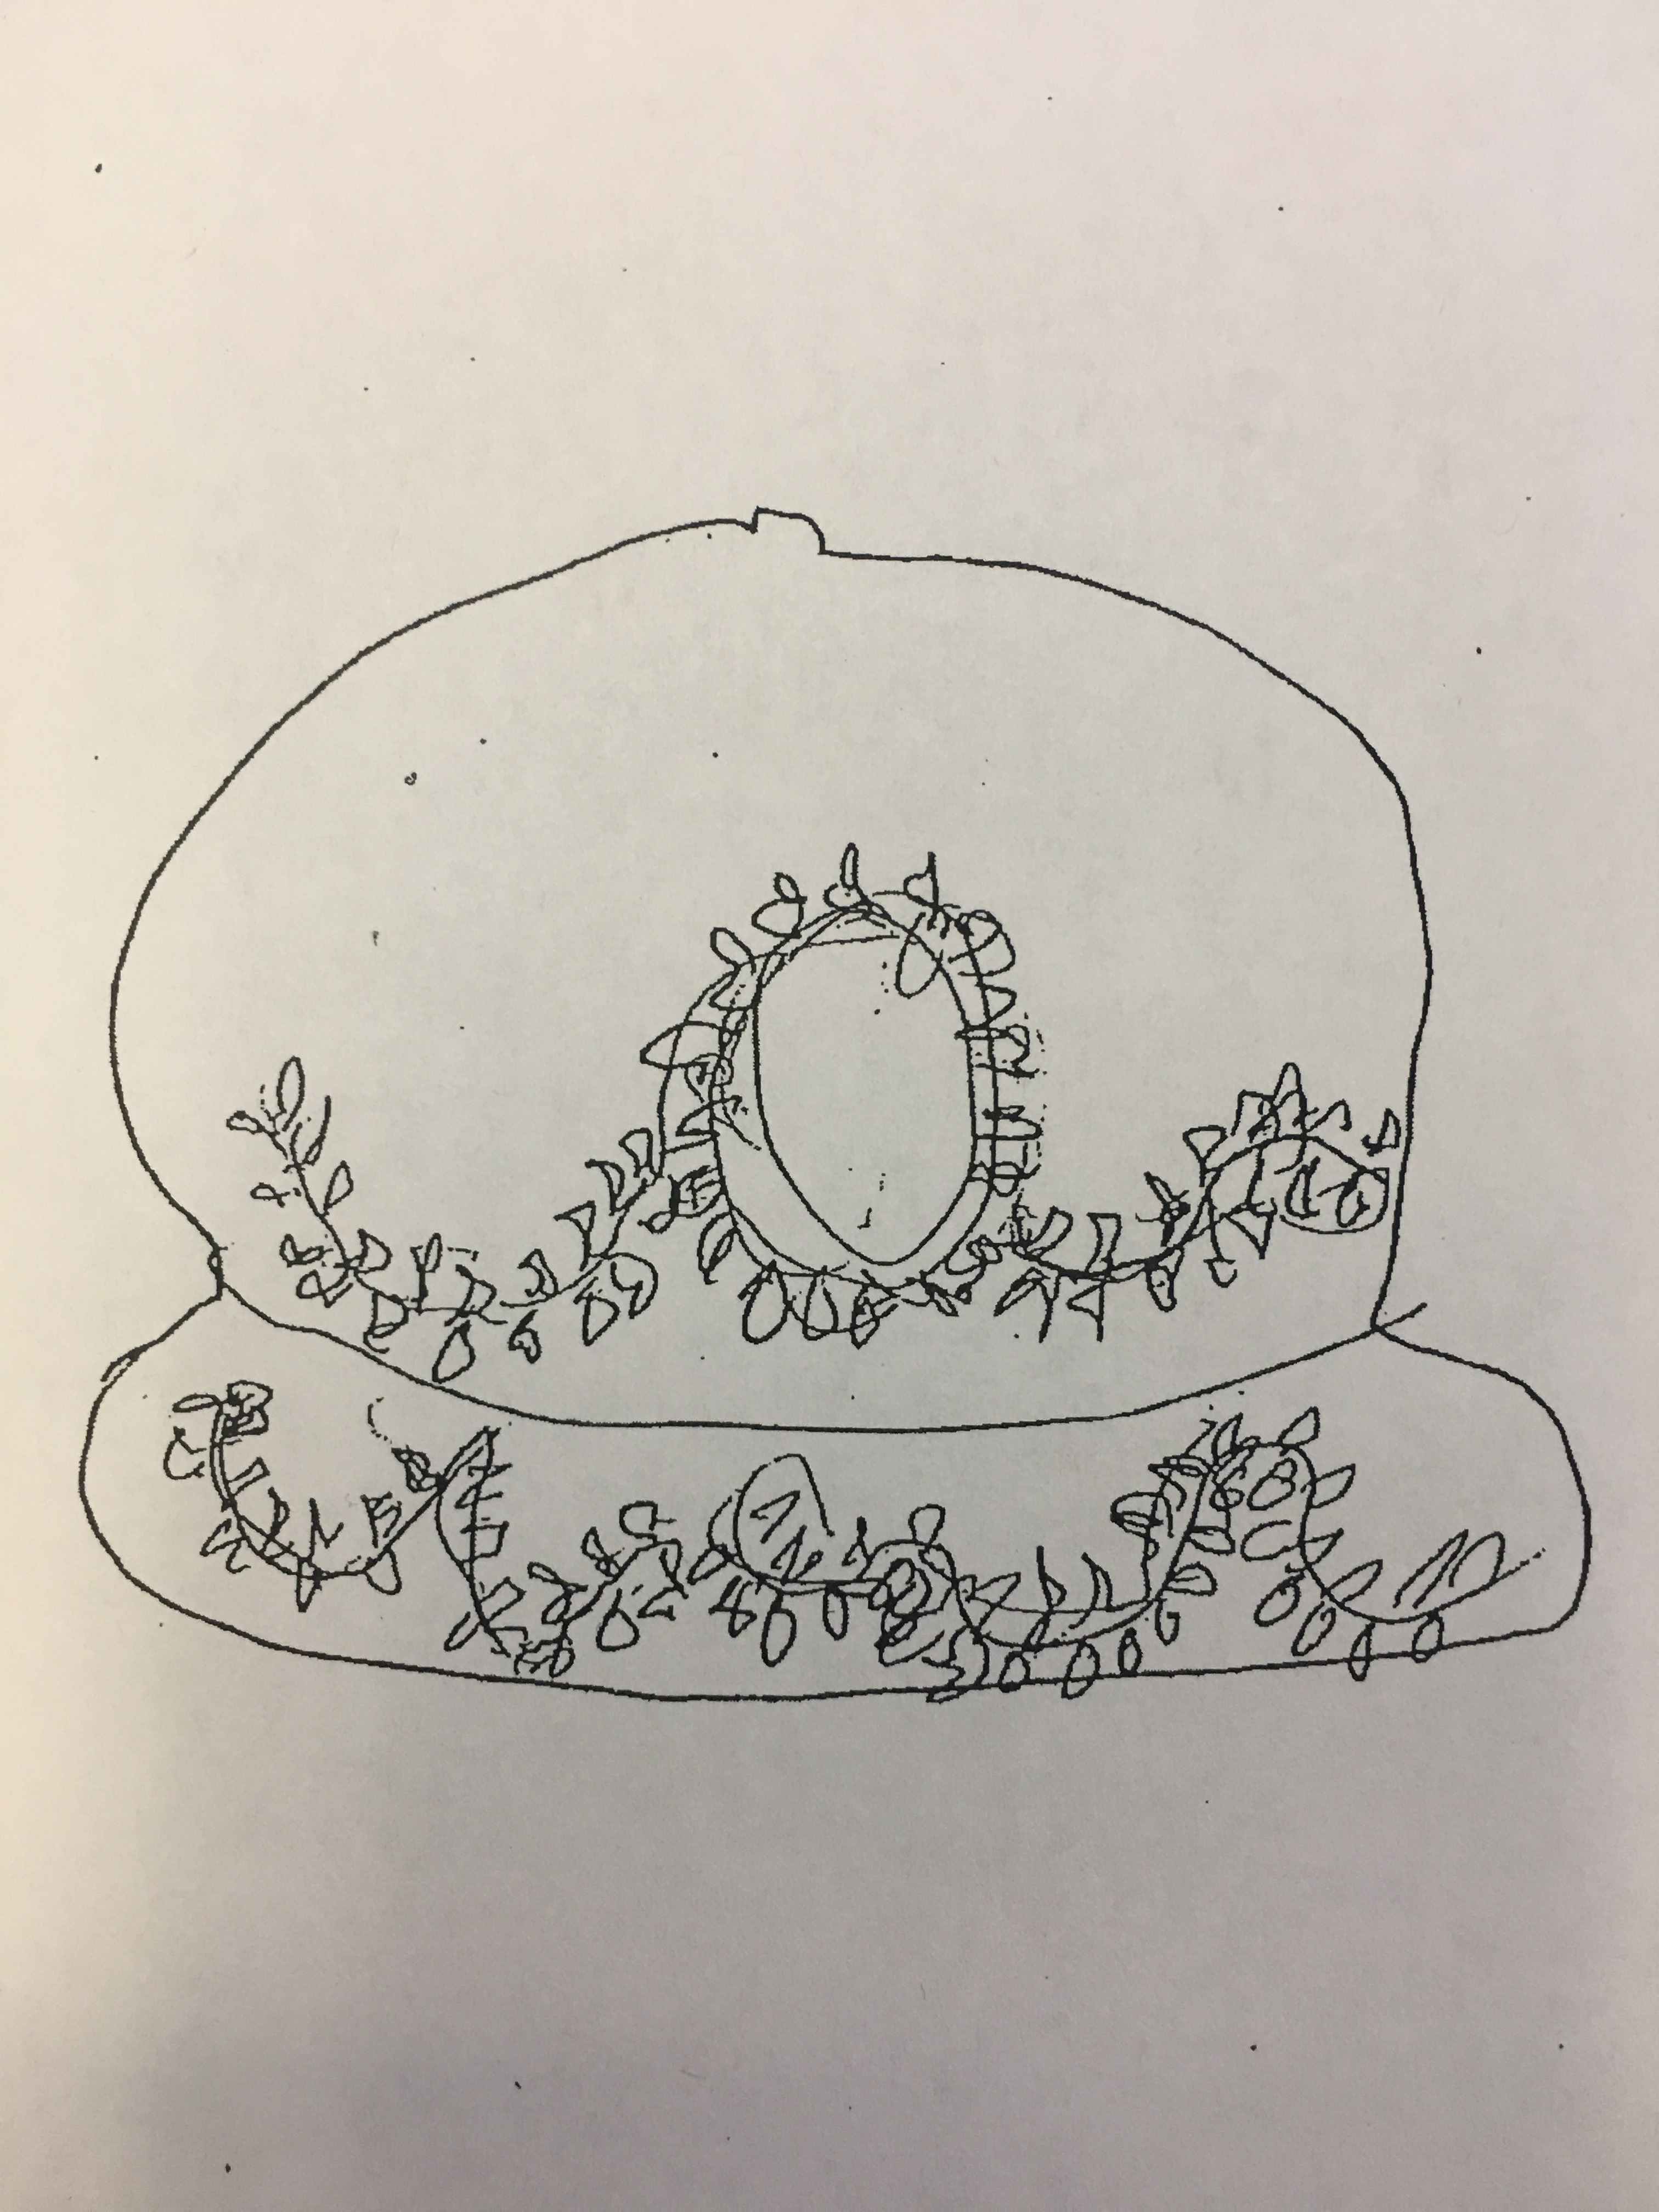 Sketch created by a victim of one of the sexual assaults that depicts a red baseball hat with white embroidered vines and leaves. The victim reported that the suspect wore this hat during the sexual assault.